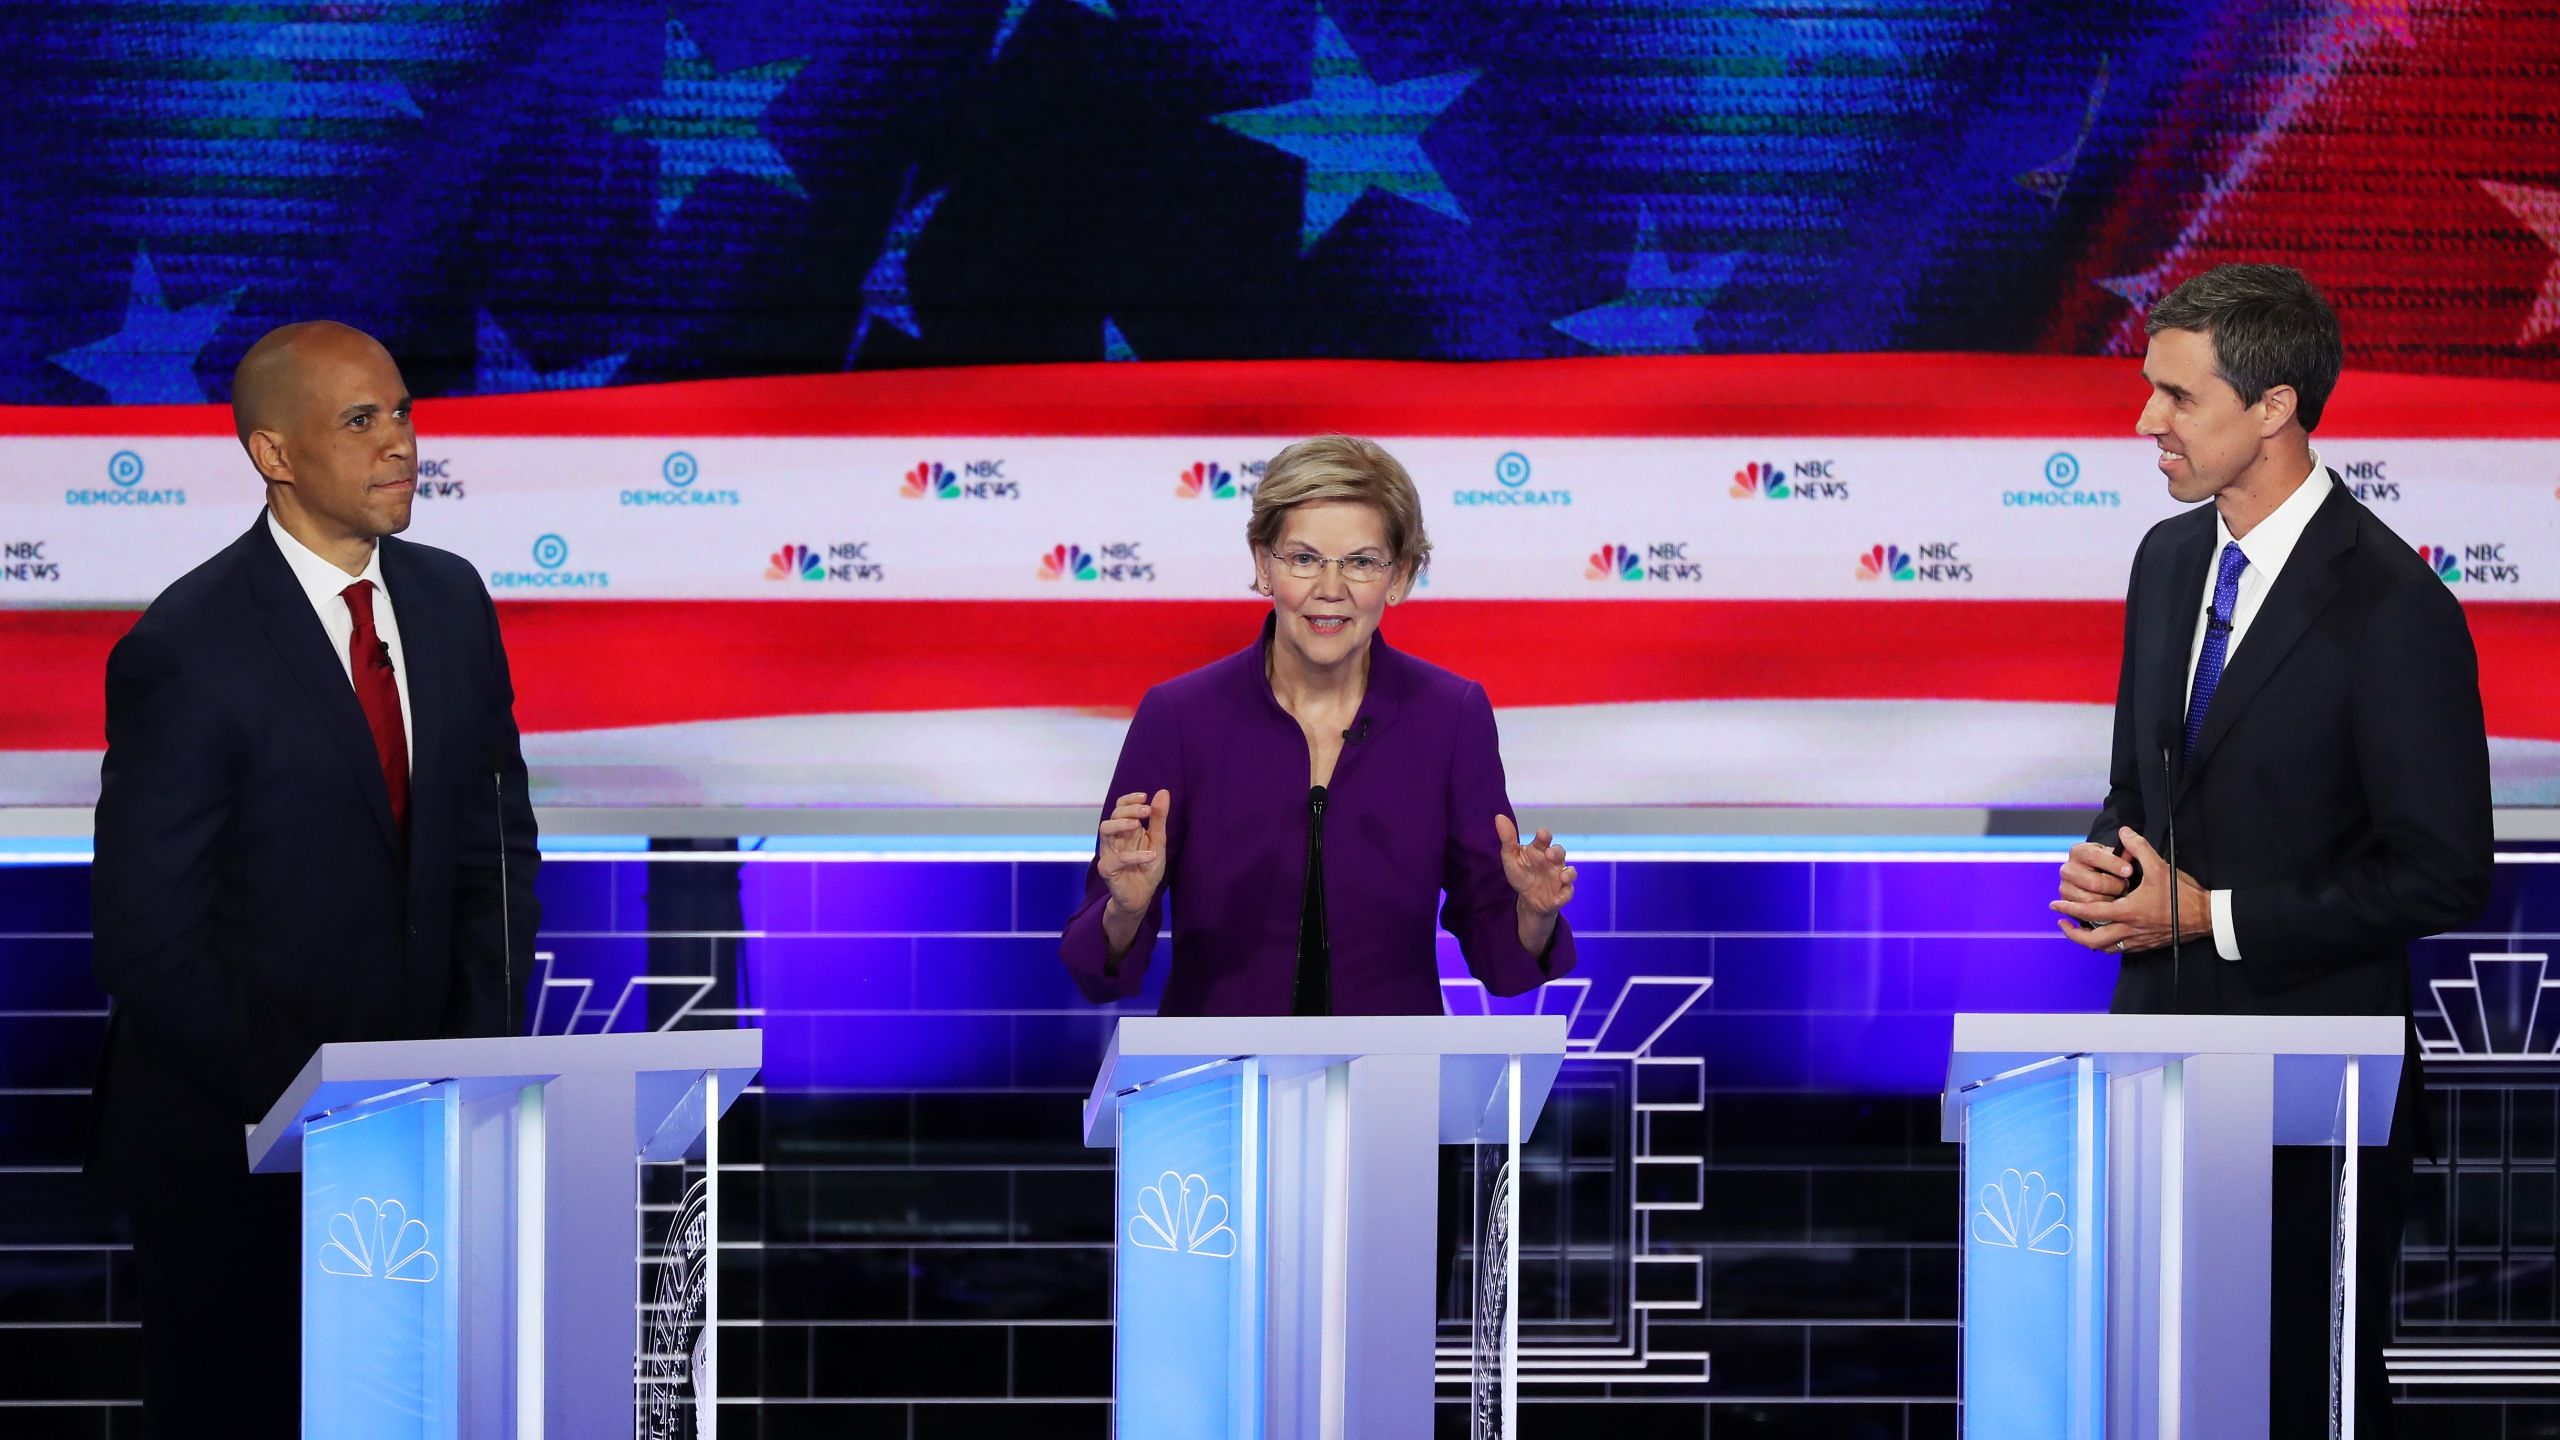 Sen. Elizabeth Warren (D-MA) speaks as Sen. Cory Booker (L) (D-NJ) and former Texas congressman Beto O'Rourke look on during the first night of the Democratic presidential debate on June 26, 2019 in Miami, Florida. (Credit: Joe Raedle/Getty Images)